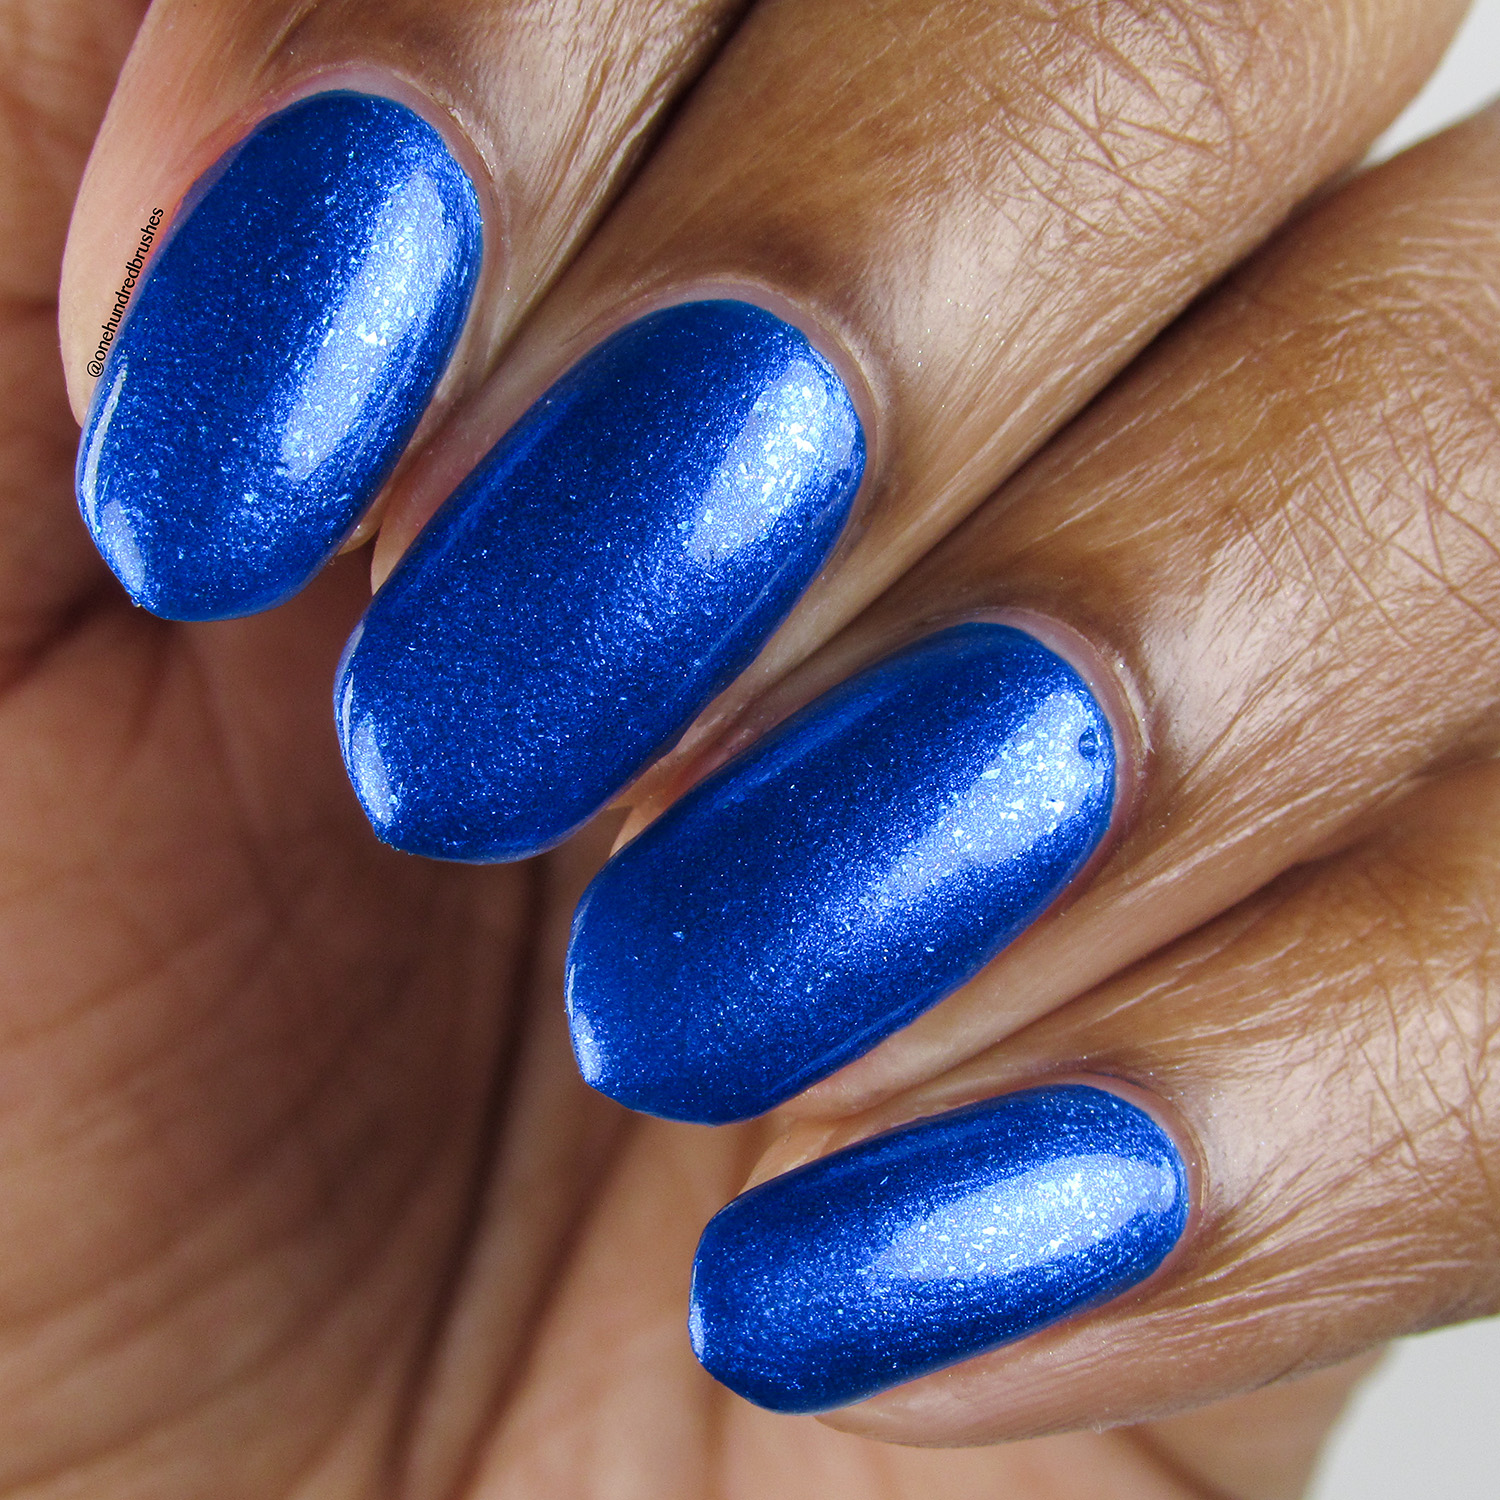 Trite - closeup - Vapid Lacquer - April 2018 - Spring release - cobalt blue, shimmer, metallic